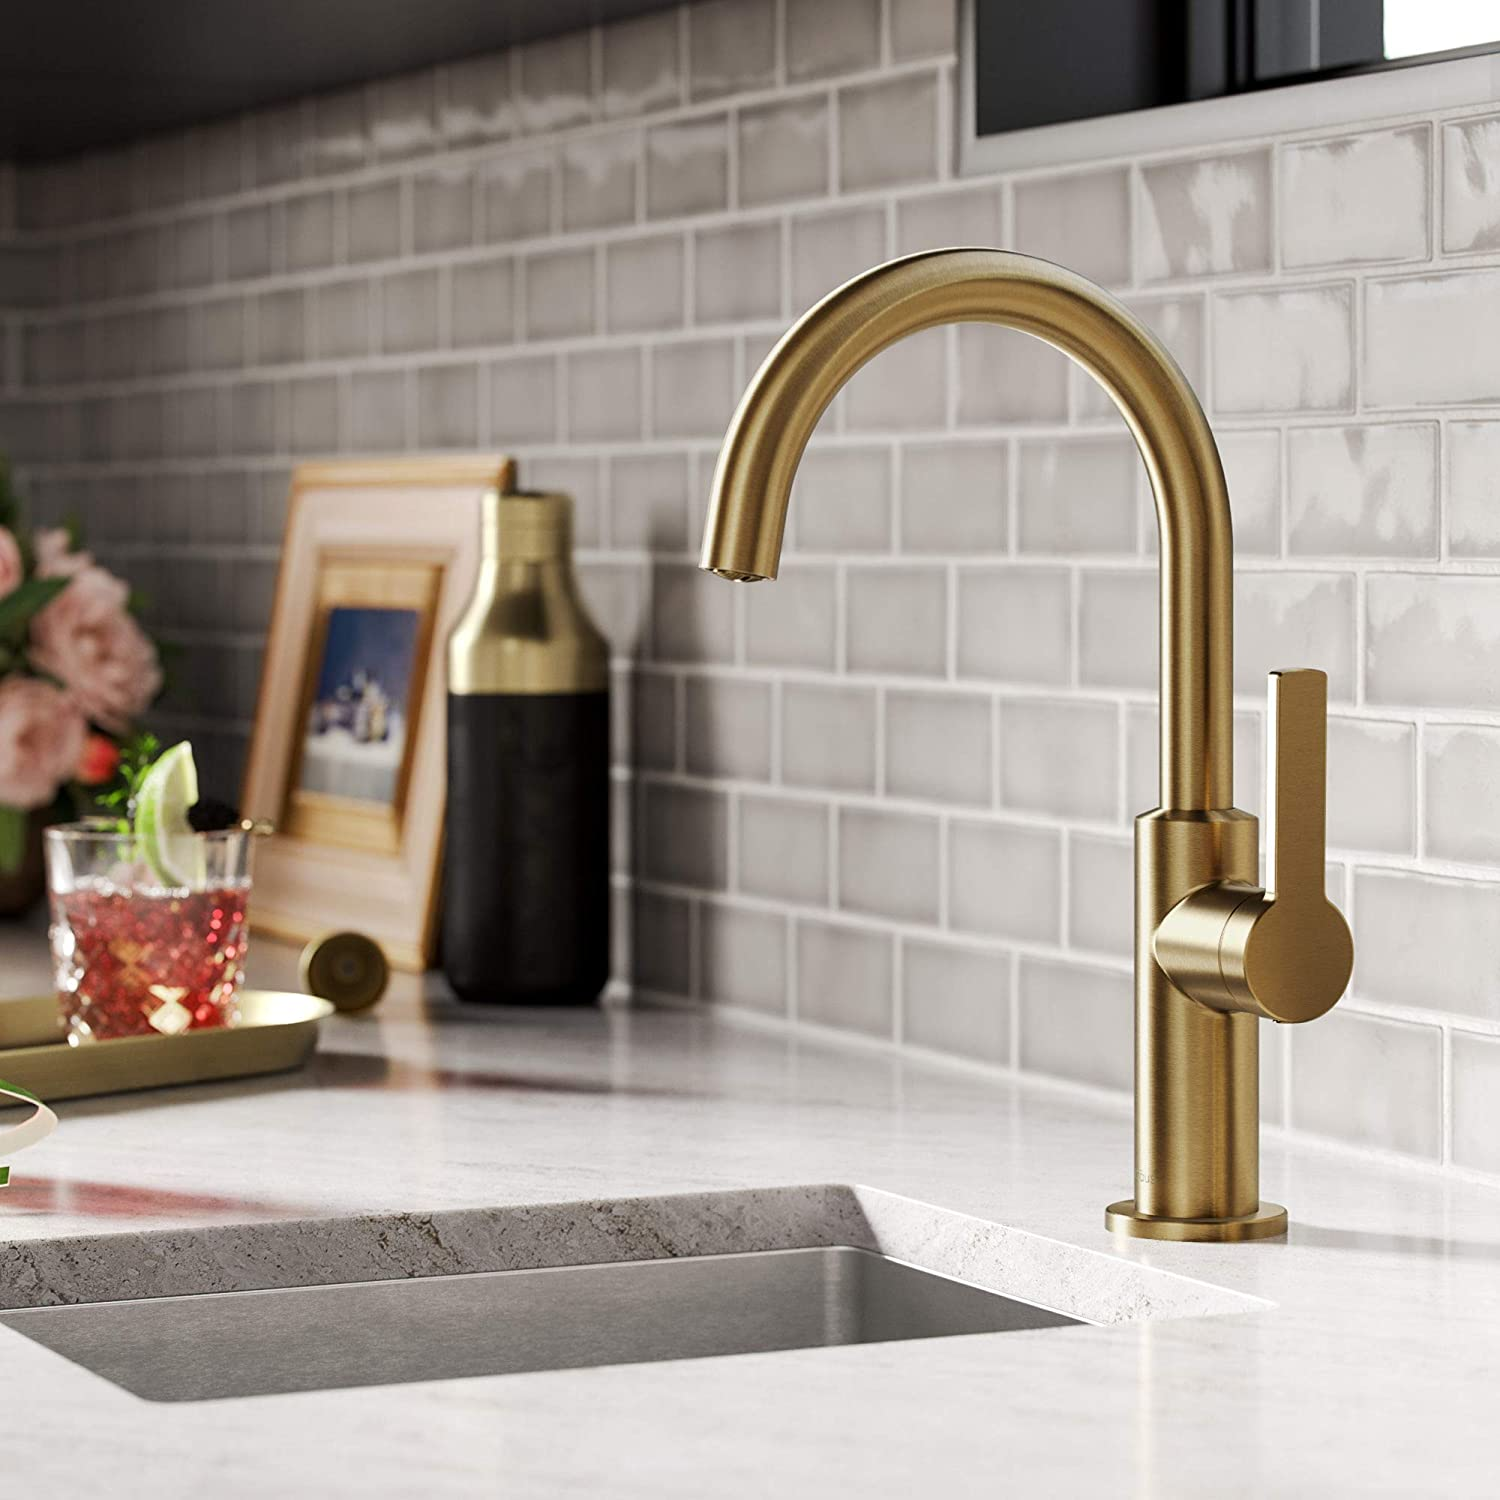 Kraus KPF-2822BB Oletto Single Handle Kitchen Bar Faucet, 12 Inch, Brushed Brass